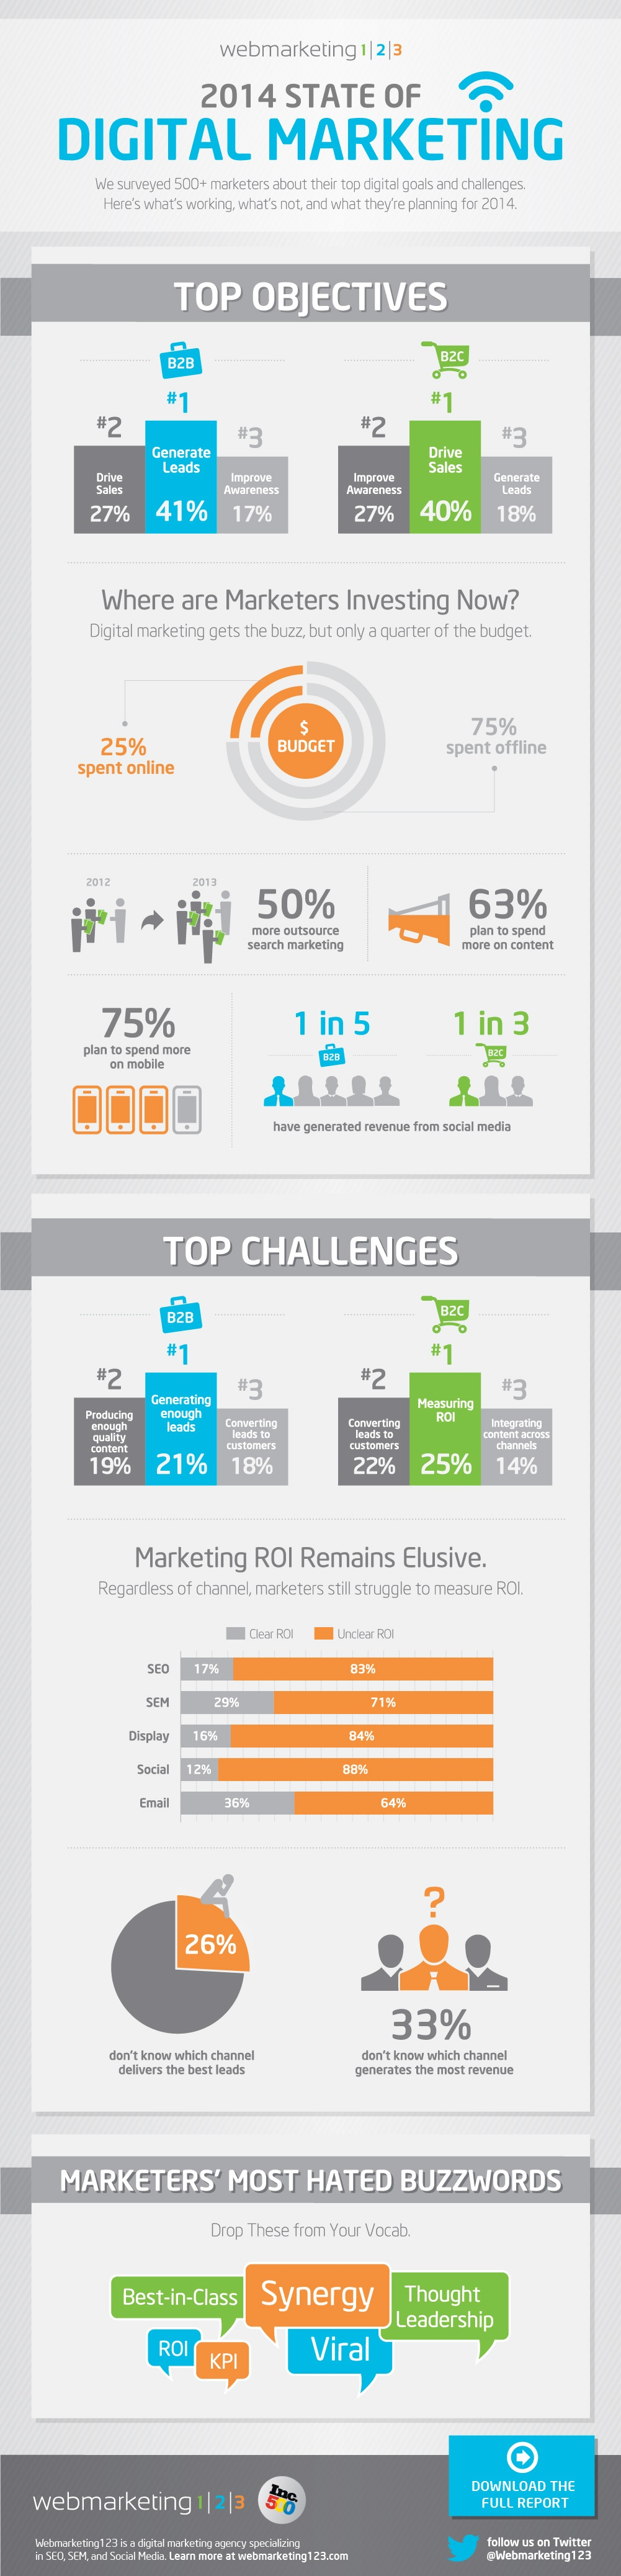 INFOGRAPHIC: 2014 State of Digital Marketing